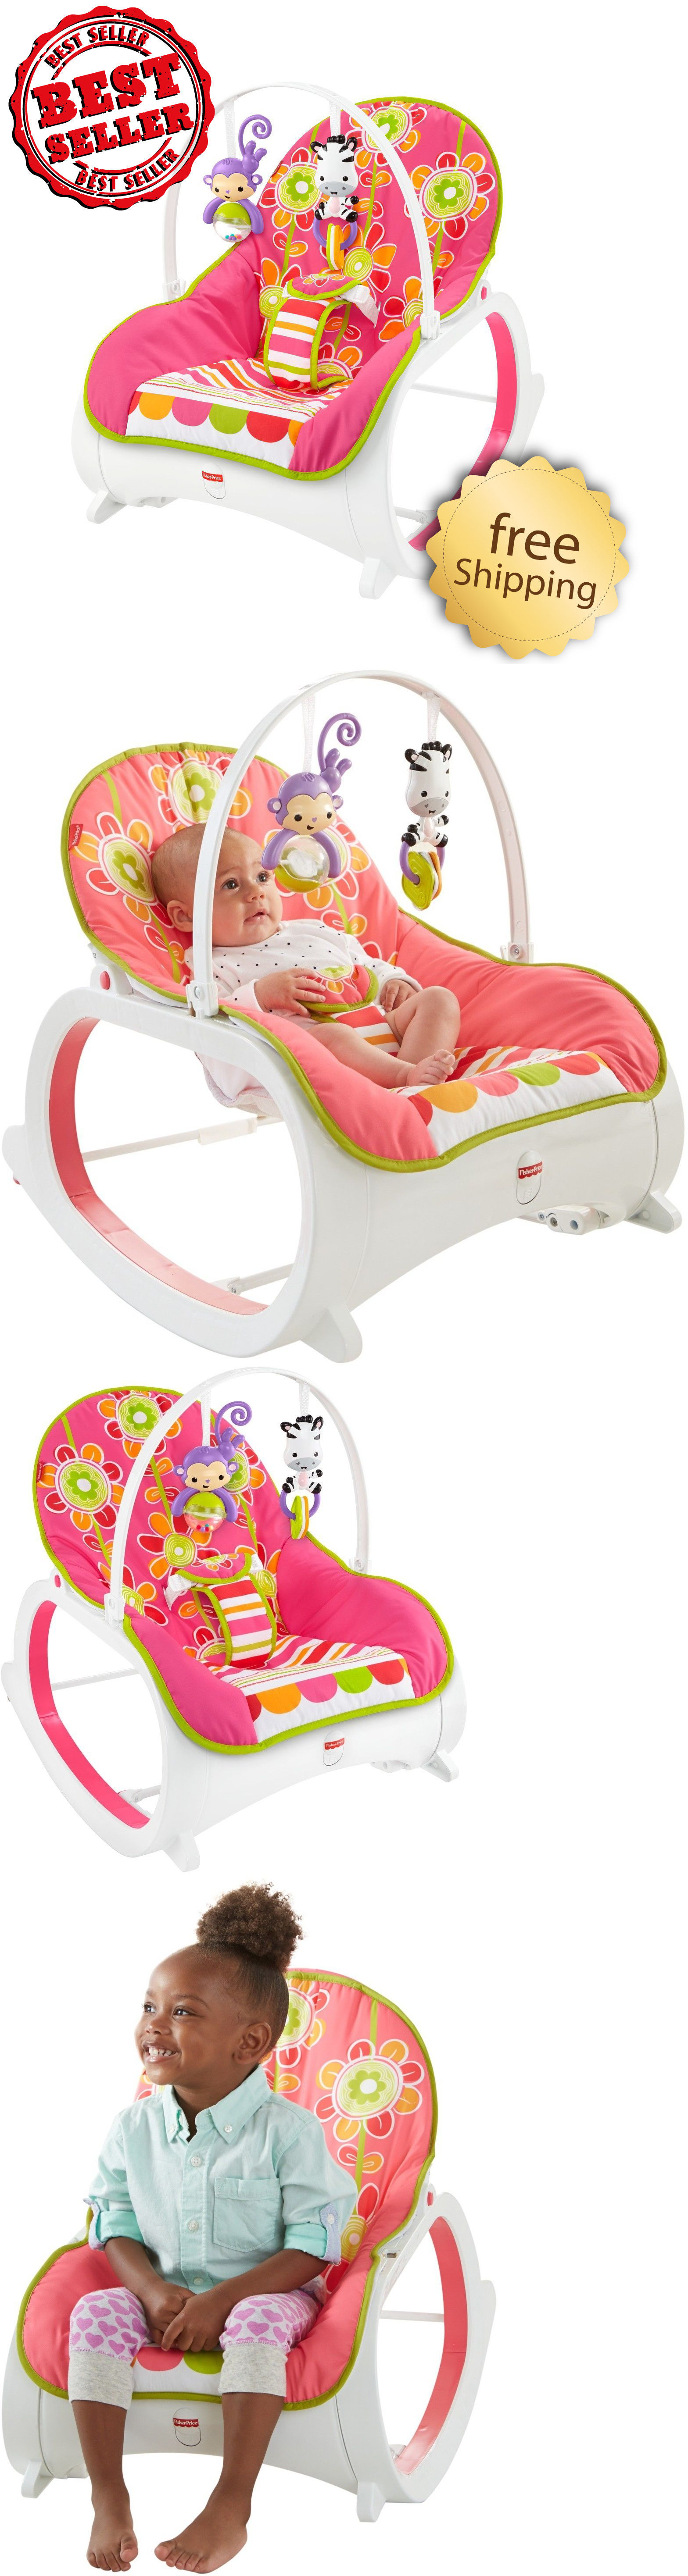 Baby pink baby chair infant to toddler rocker bouncer seat sleeper